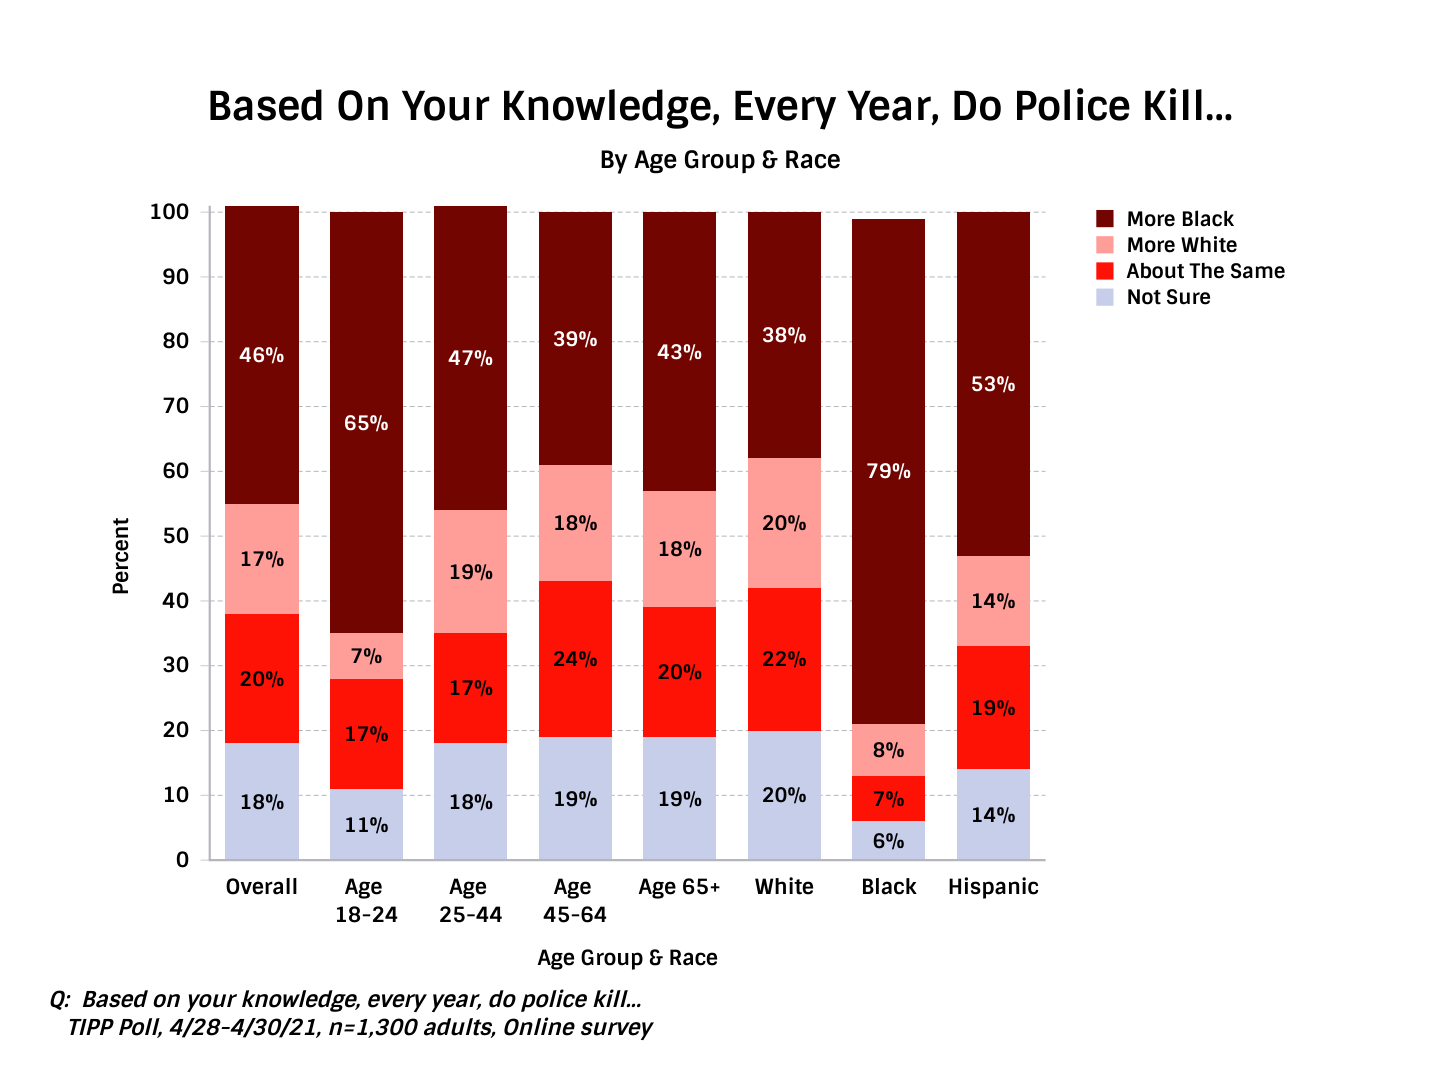 TIPP Poll asking Americans Who Do The Police Kill More Each Year - Chart